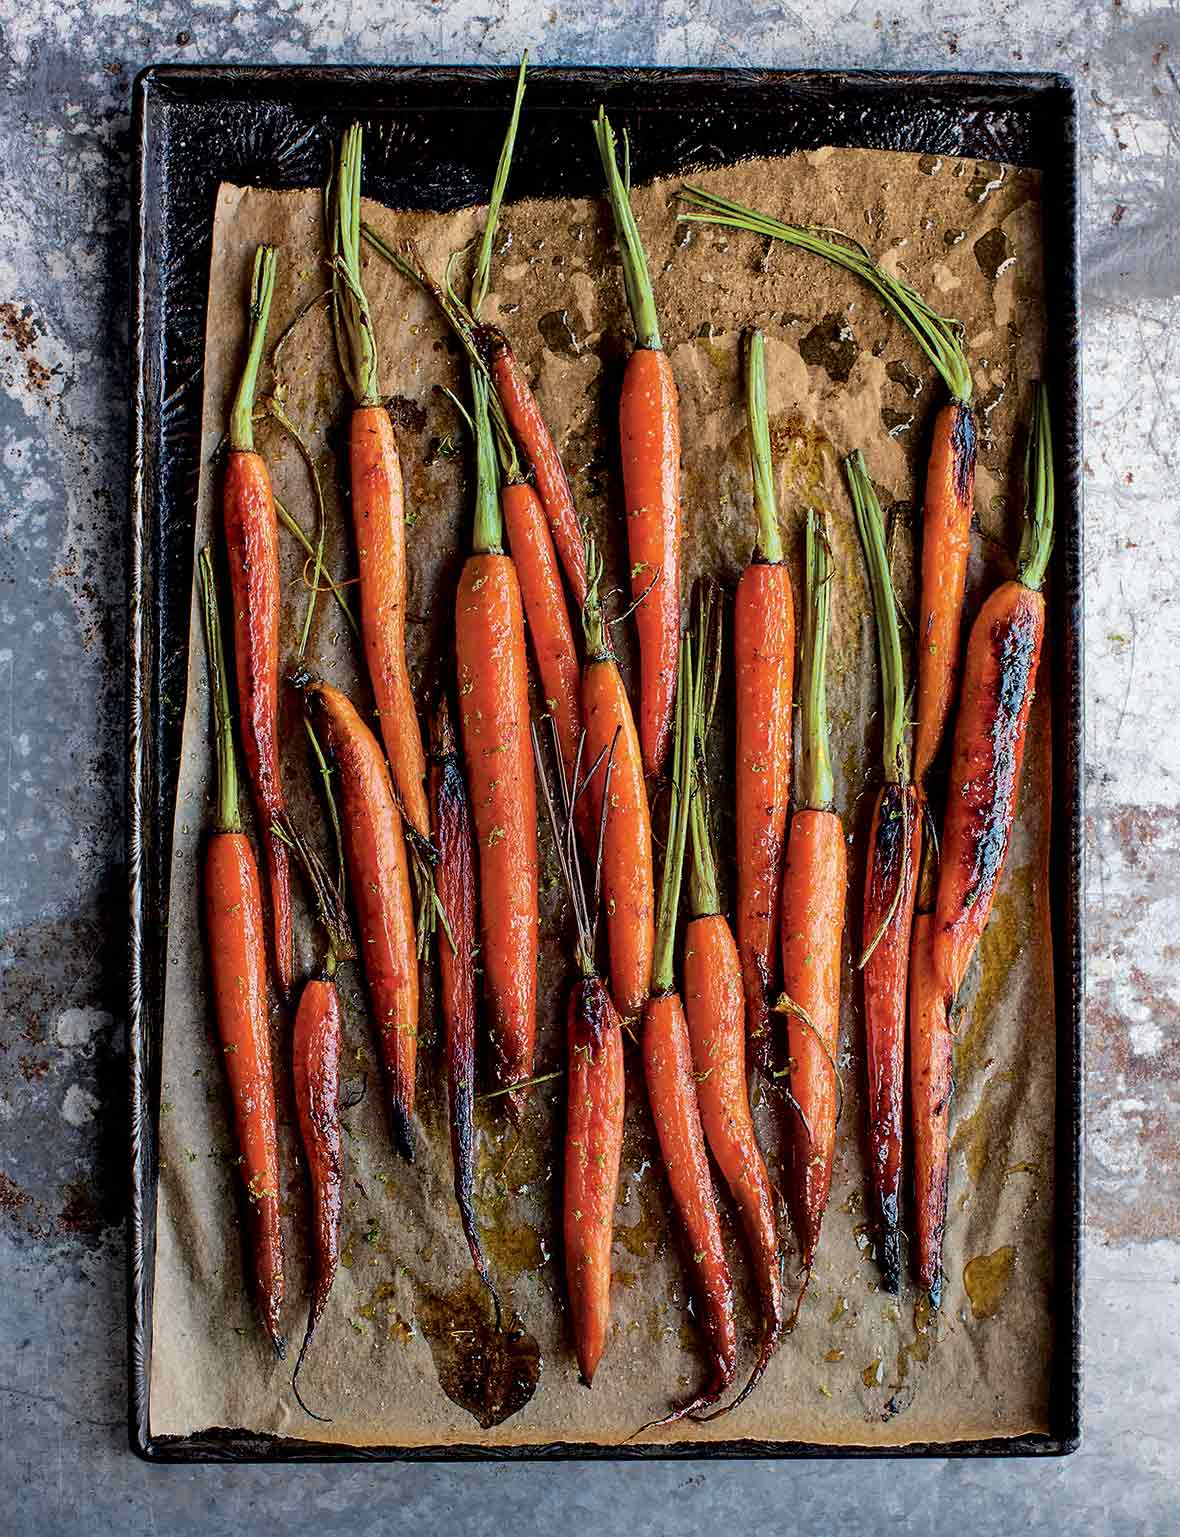 A bunch of roasted sweet and spicy carrots on a parchment-lined baking sheet.